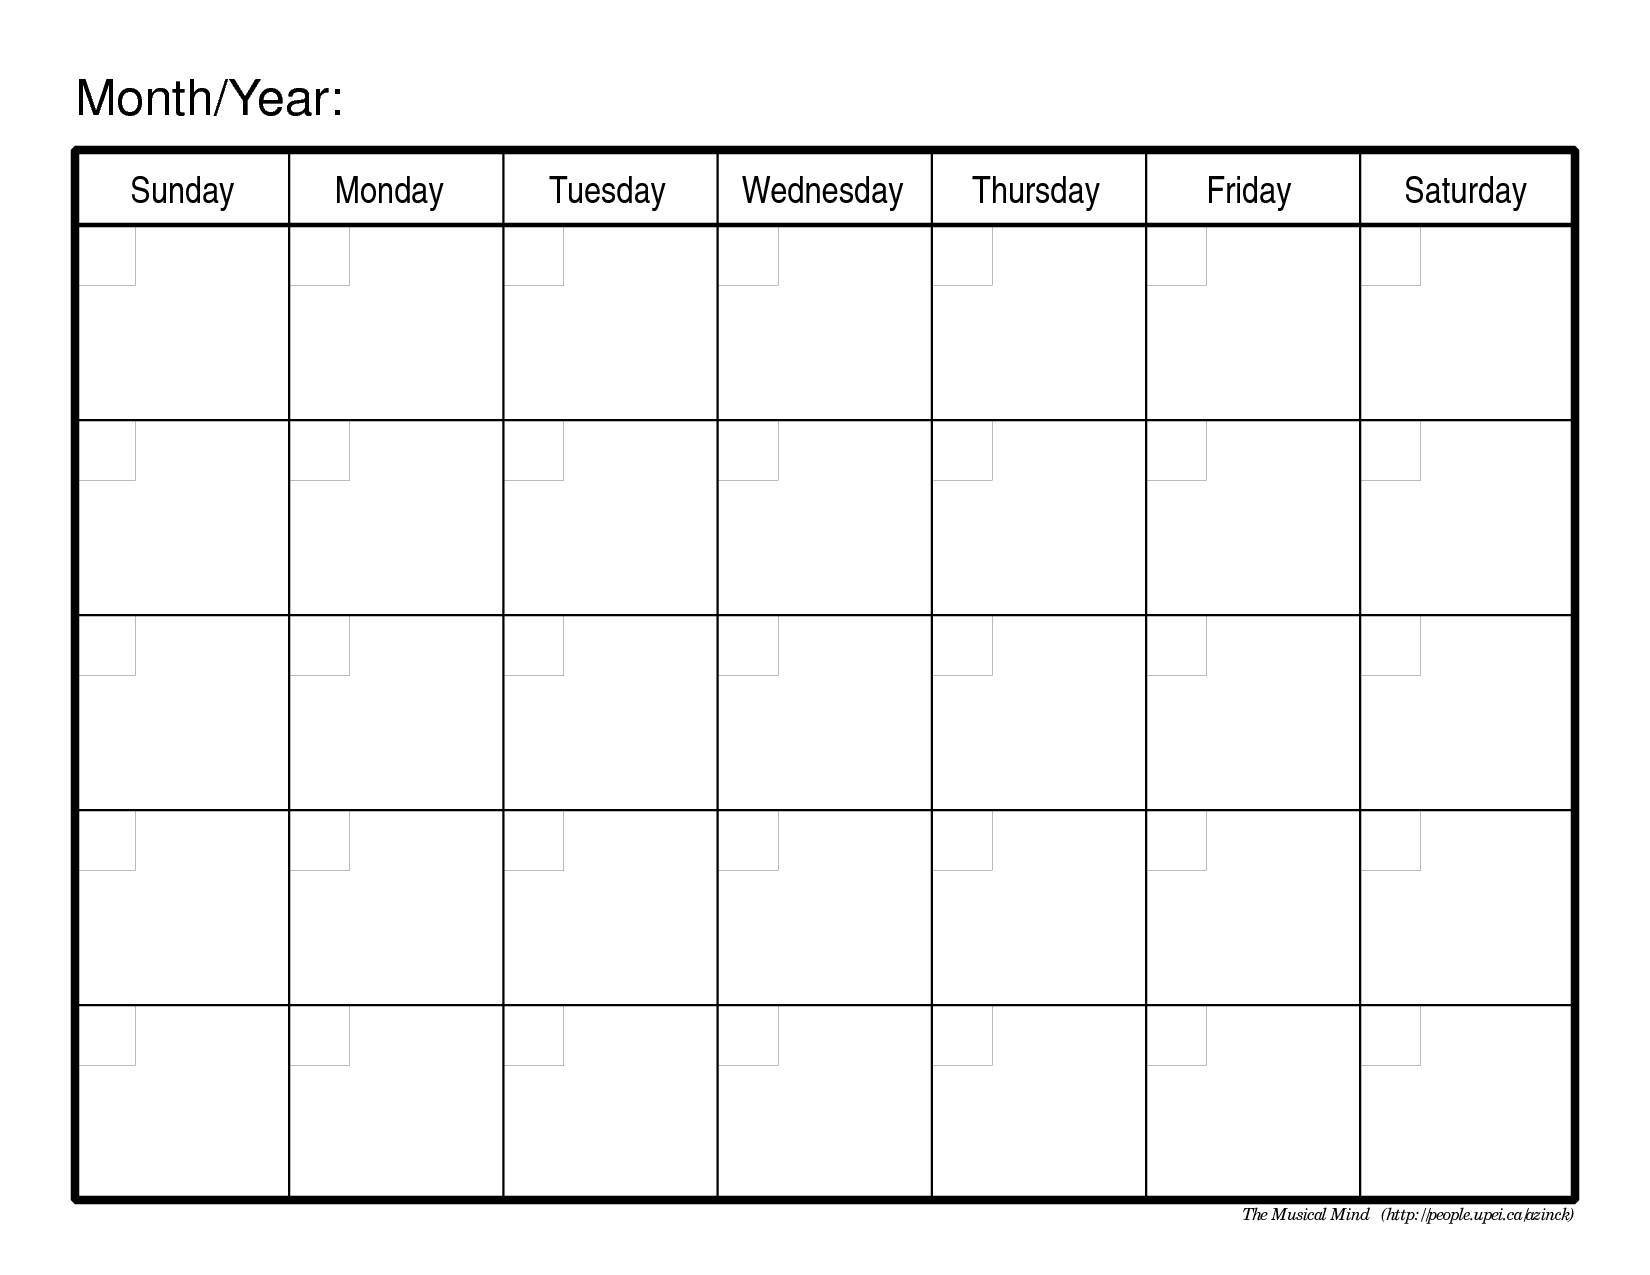 Monthly-Calendar-Template-Image-Monthly Calendar Sign Up Sheet